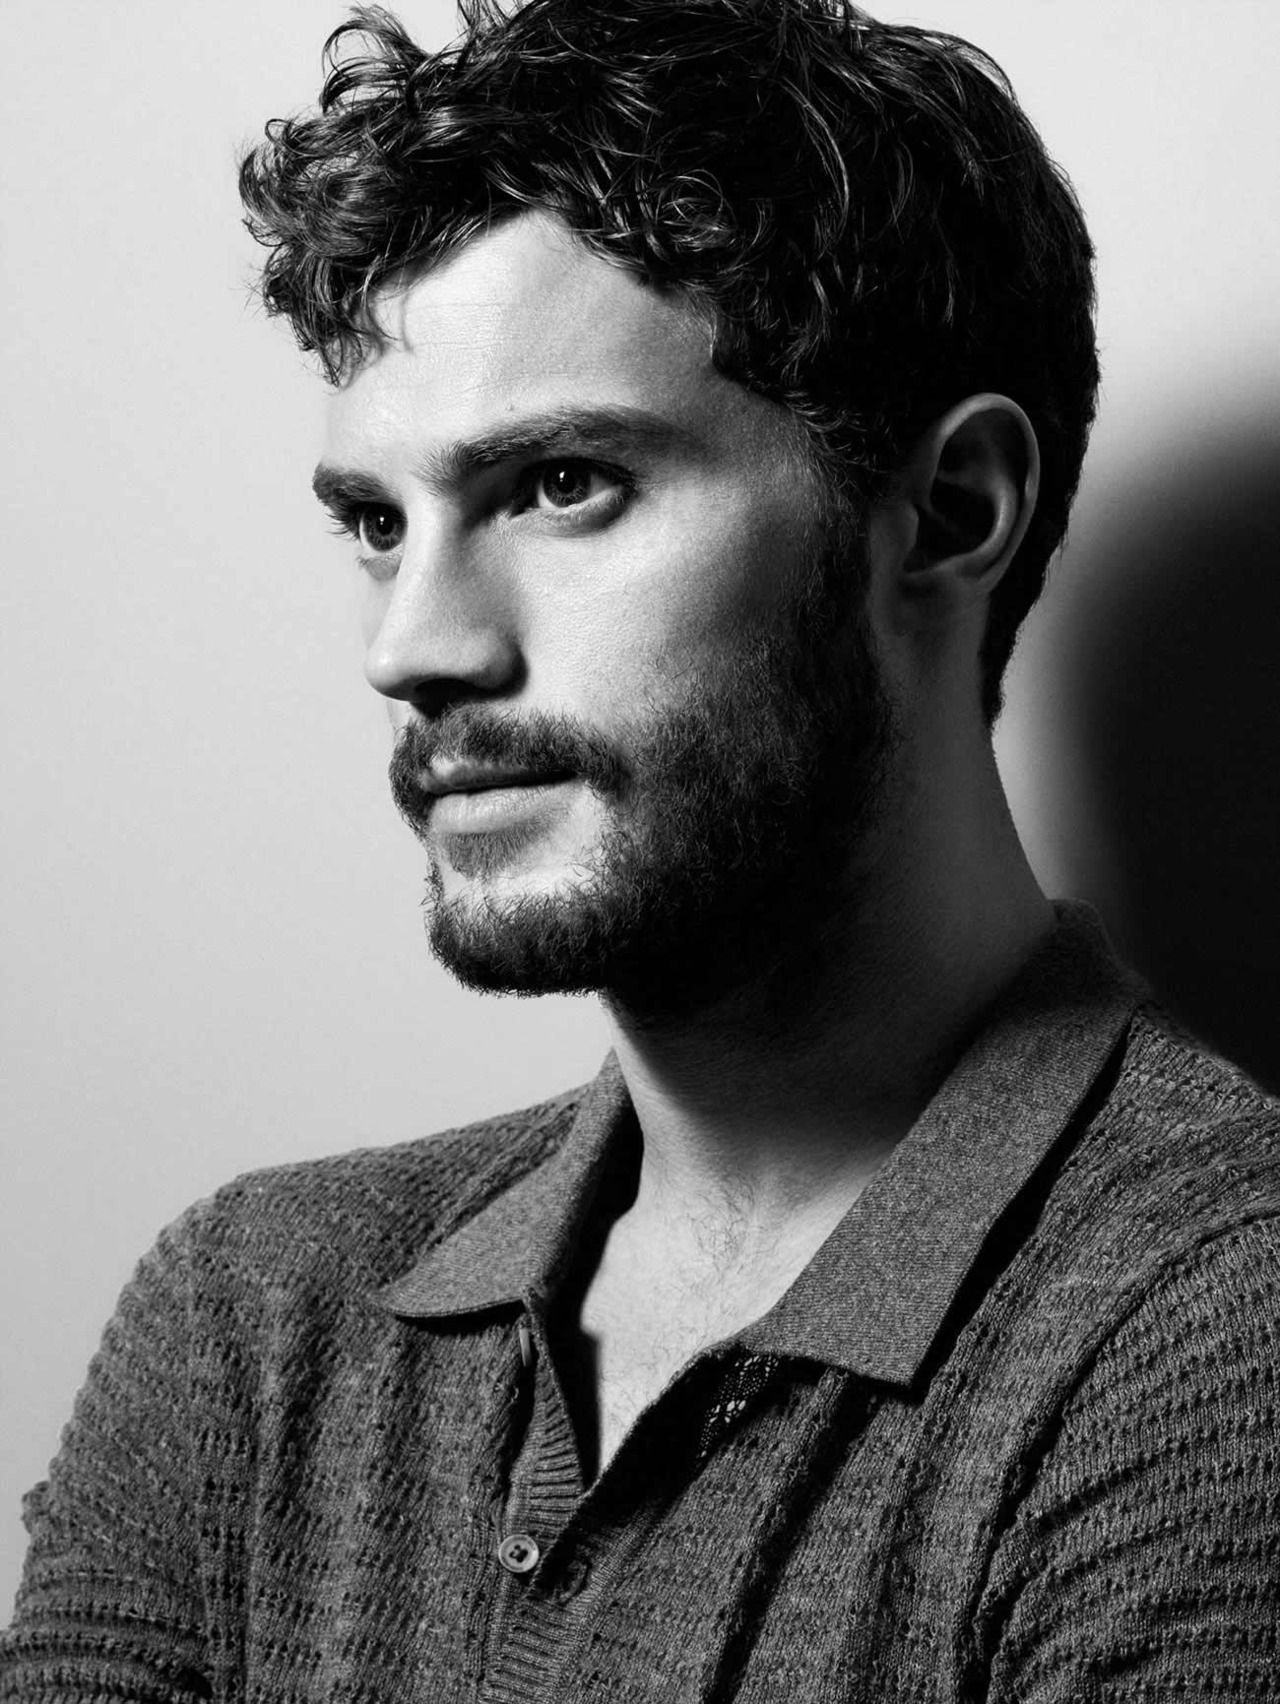 Jamie doran the new christian grey! Not sure I'm happy about it yet